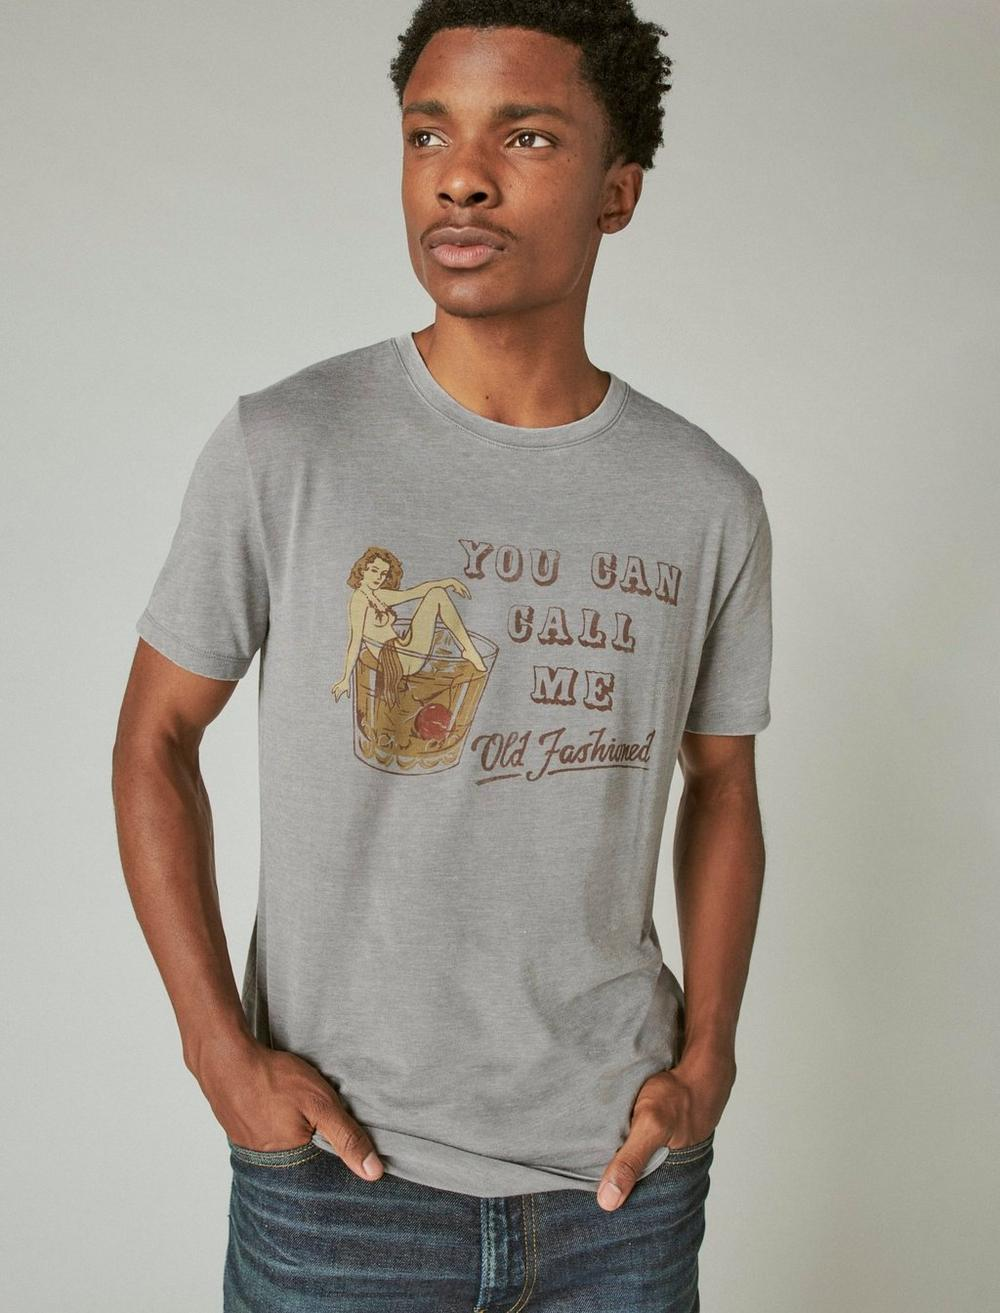 OLD FASHIONED GRAPHIC TEE, image 1